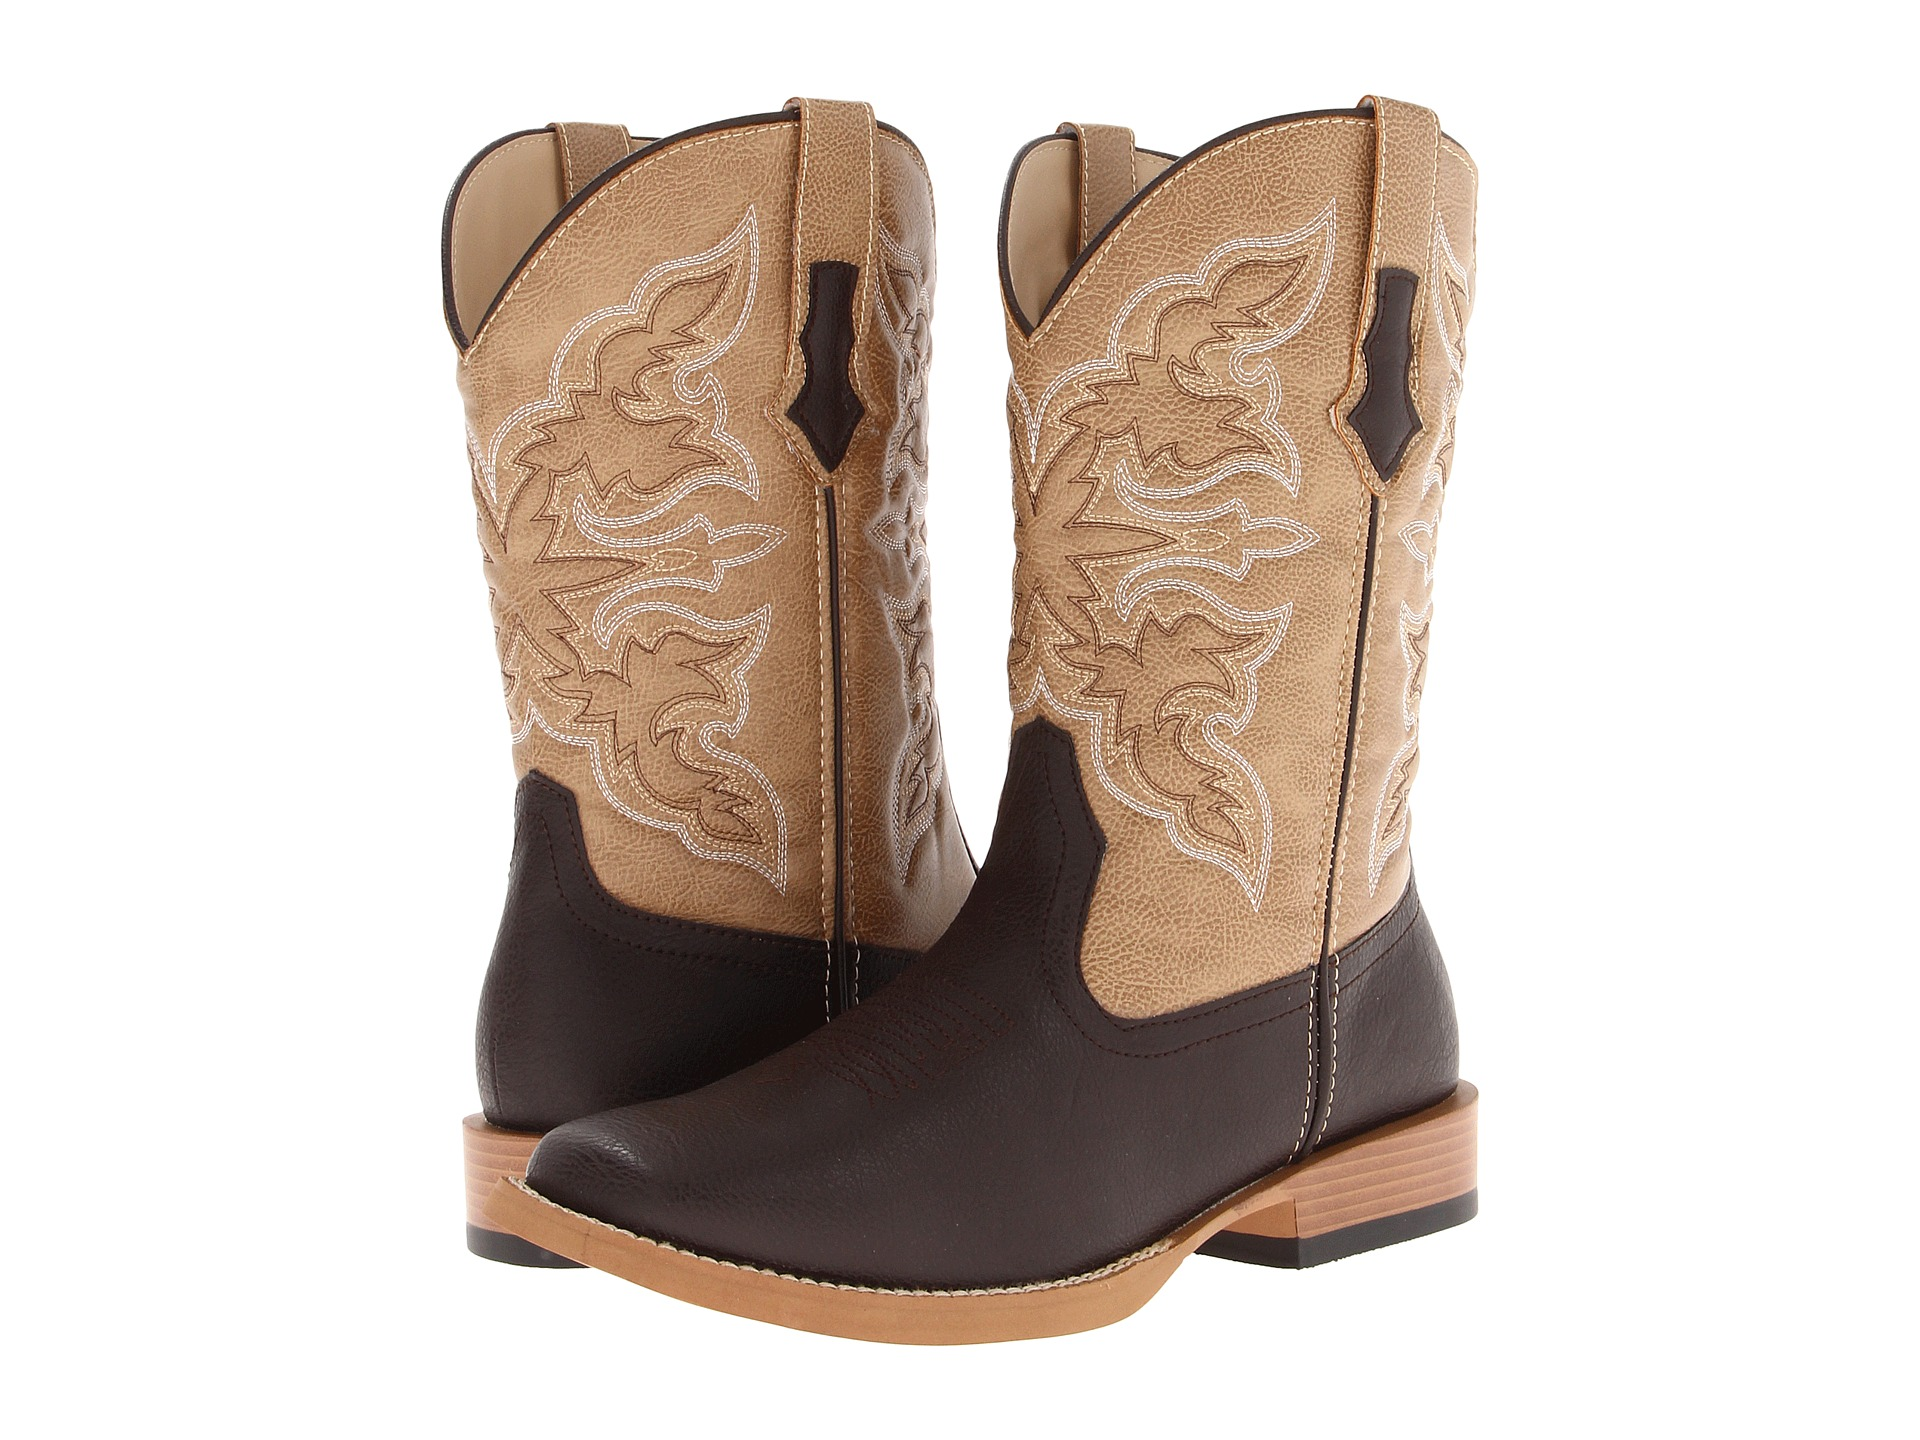 roper square toe cowboy boot at zappos